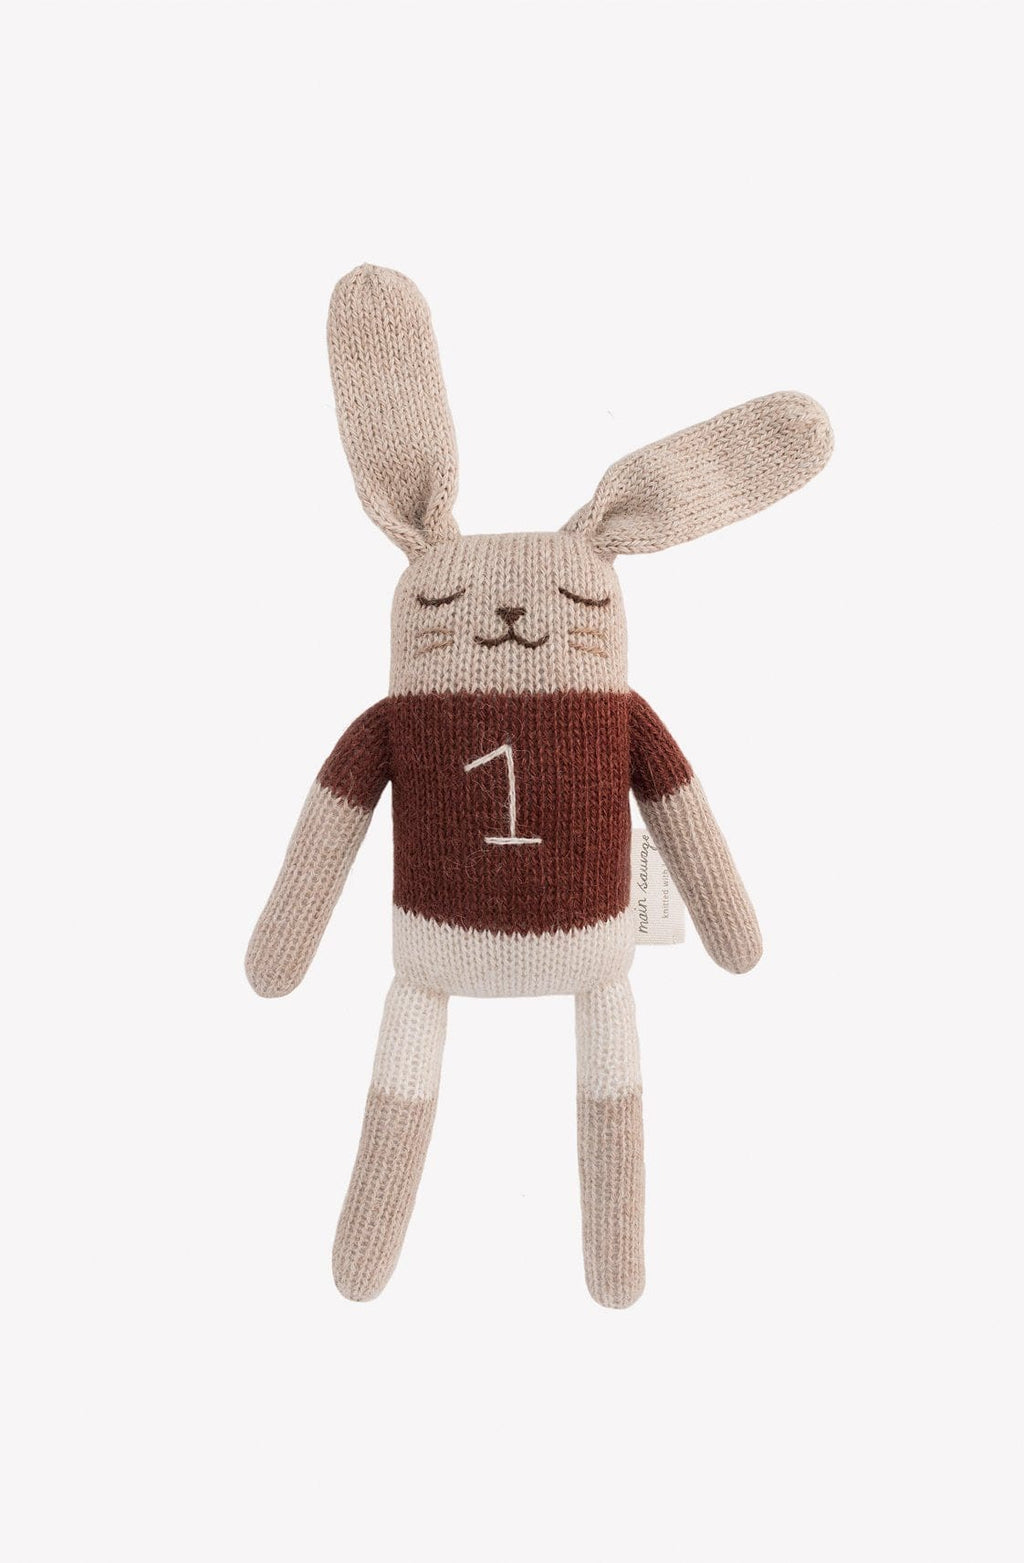 Main Sauvage Bunny Soft Toy, Sienna shirt - Hello Little Birdie